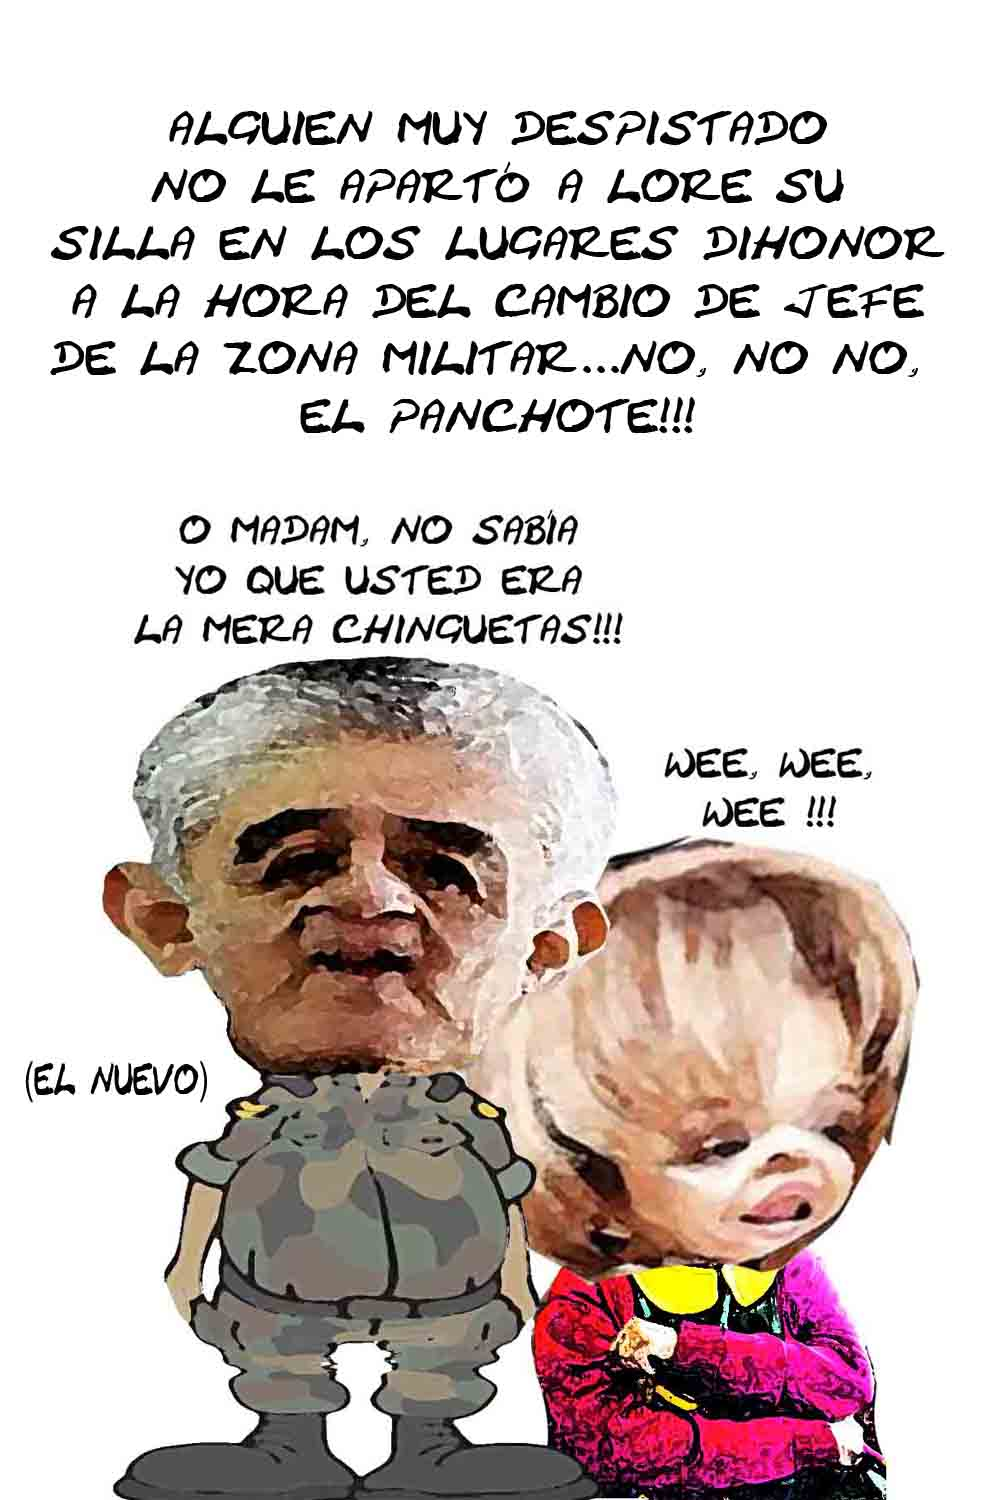 El comic político regresa